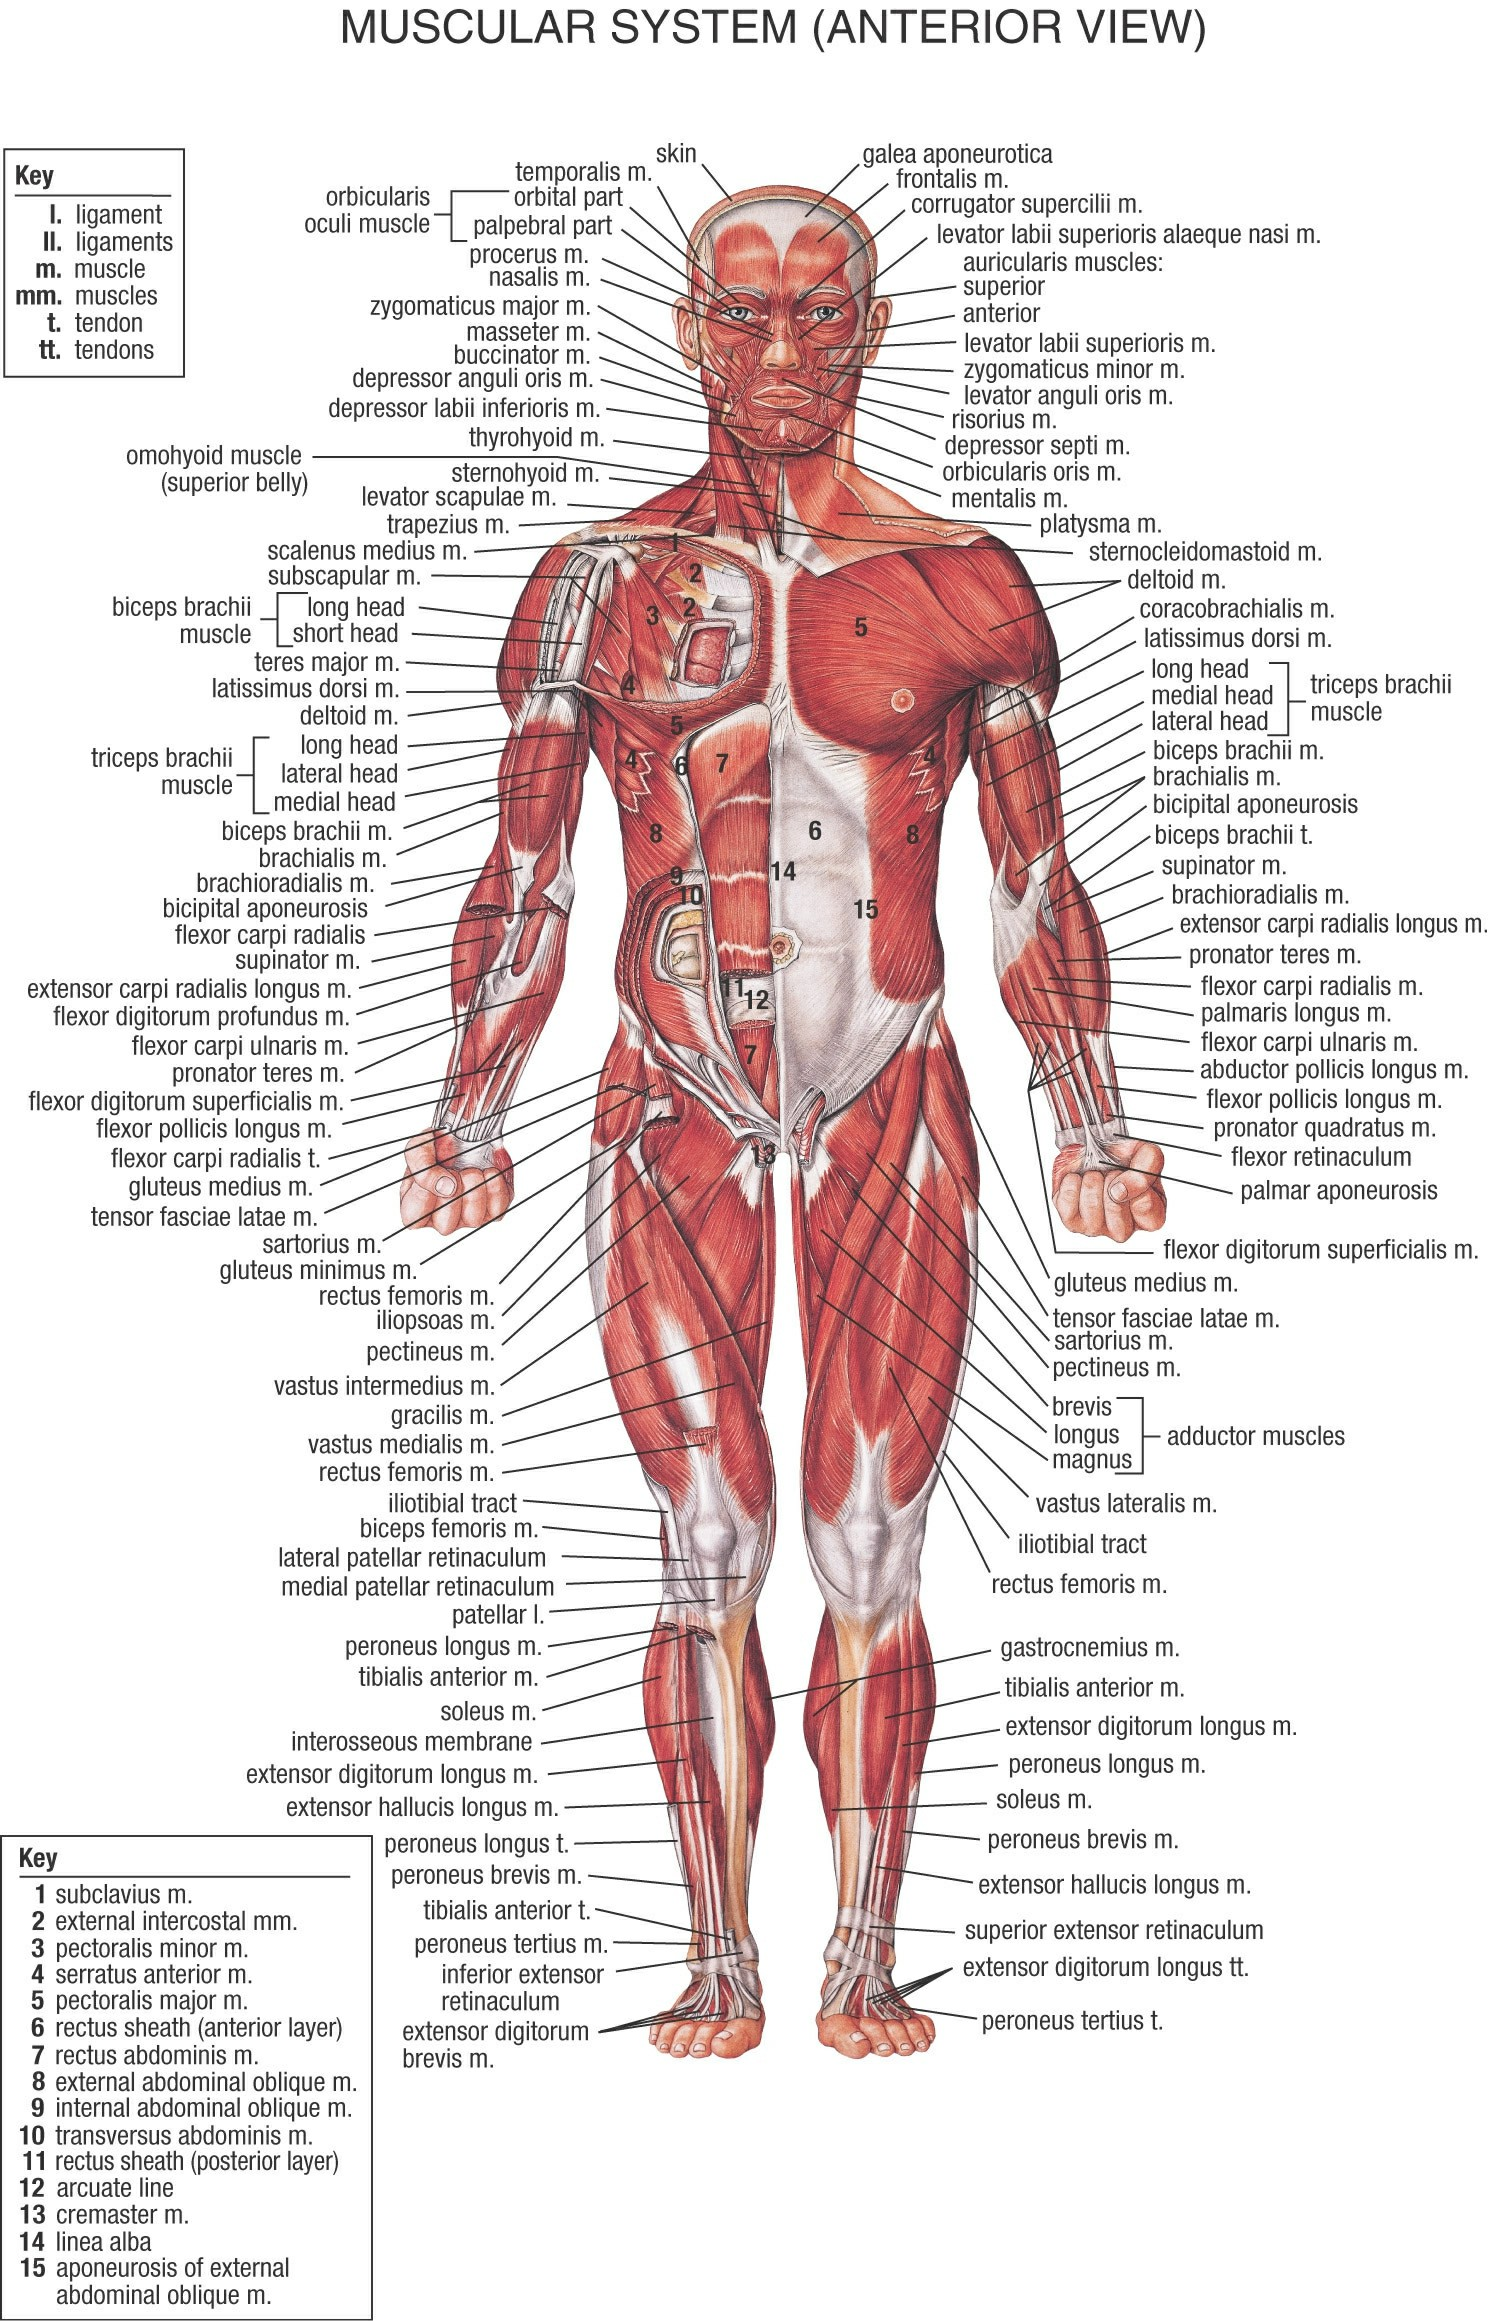 Muscular System Of Human 1000+ Images About Muscular System On Pinterest | Human Anatomy Pictures Wallpapers